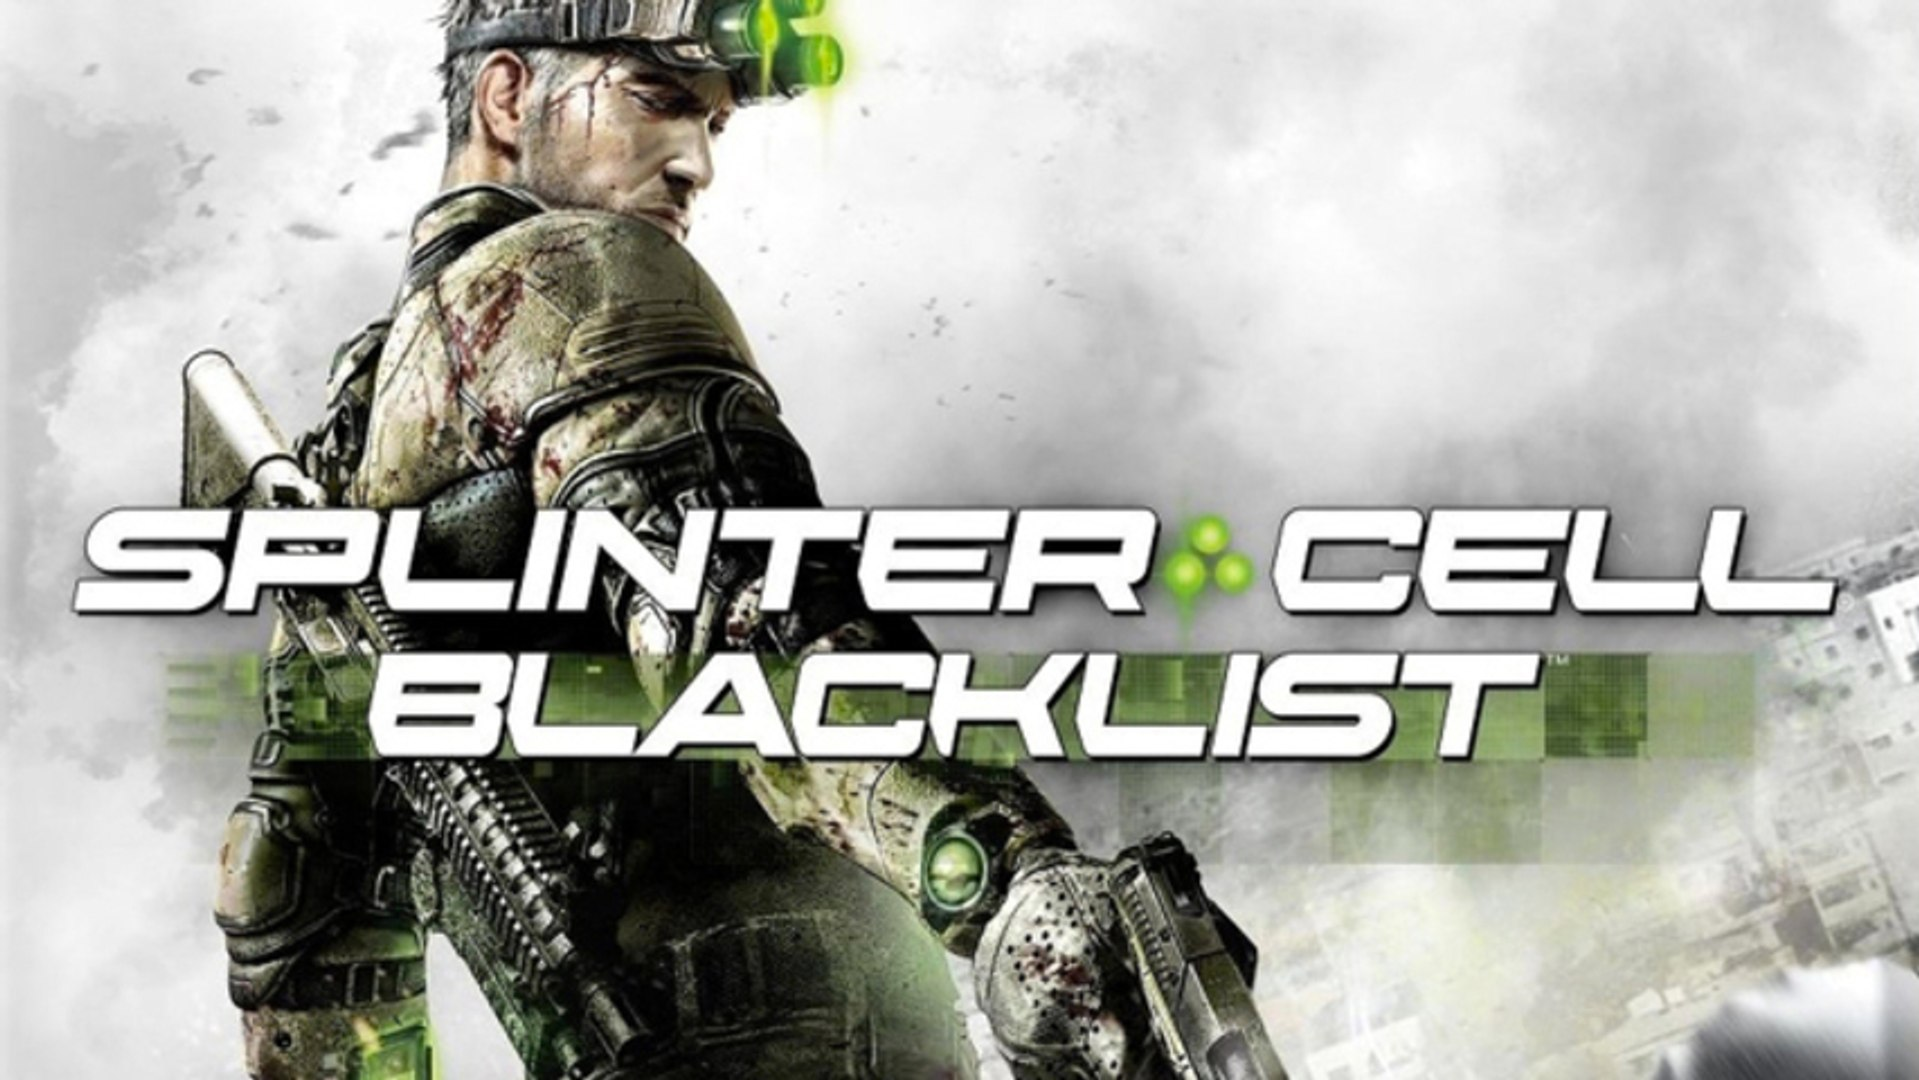 Splinter Cell Blacklist #16 SkinO